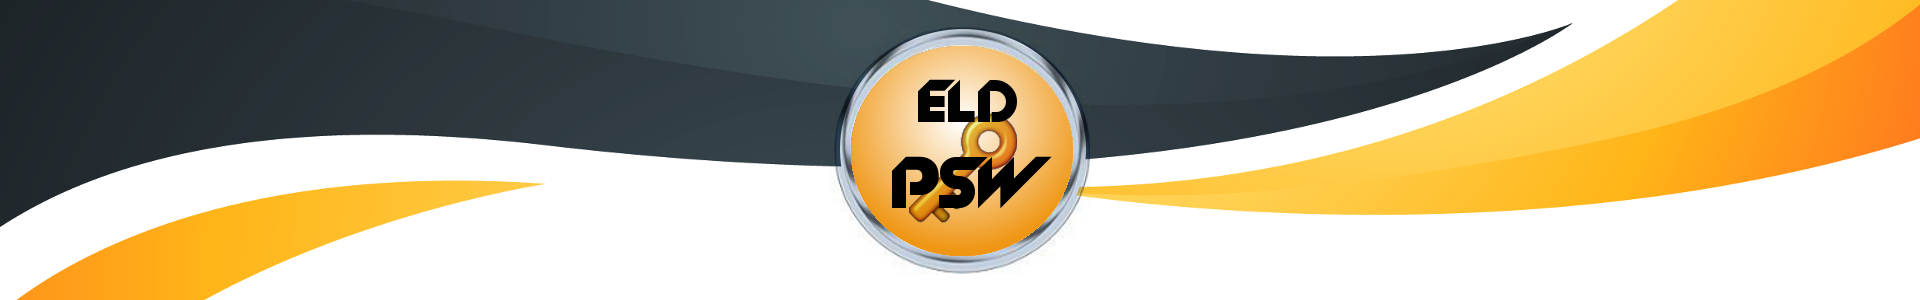 ELD Reset password Notes Domino